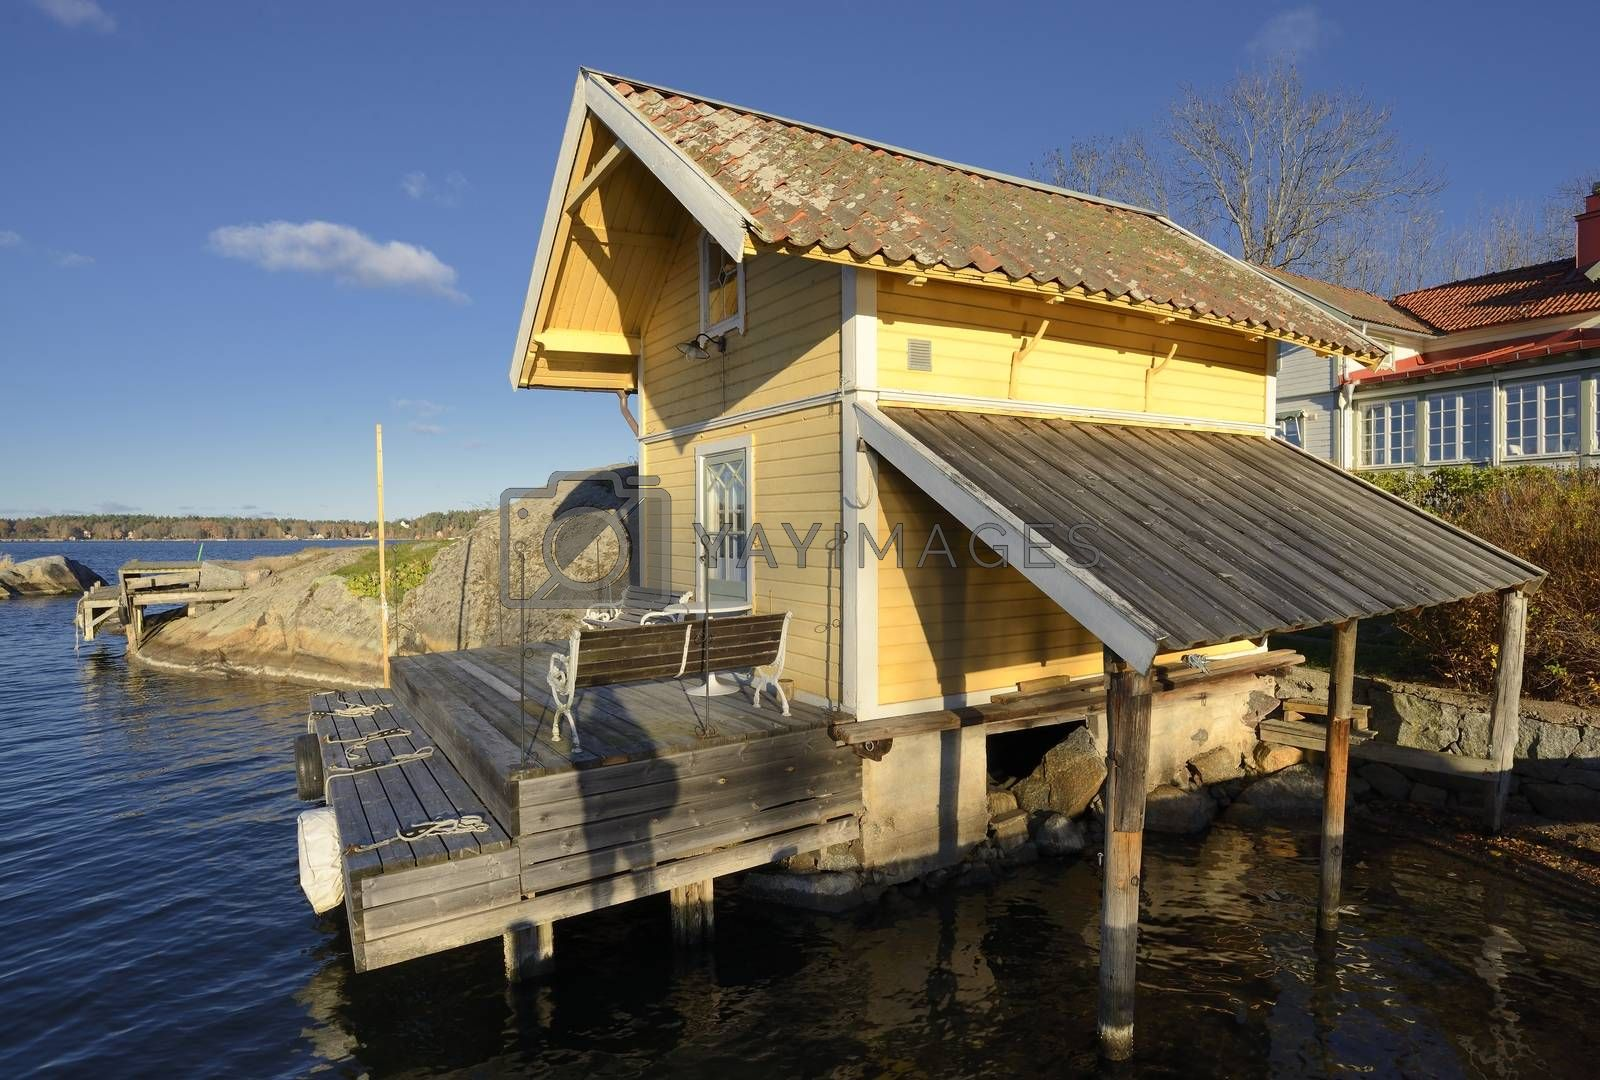 Boathouse in Vaxholm. Vaxholm a Swedish city in Stockholm archipelago.